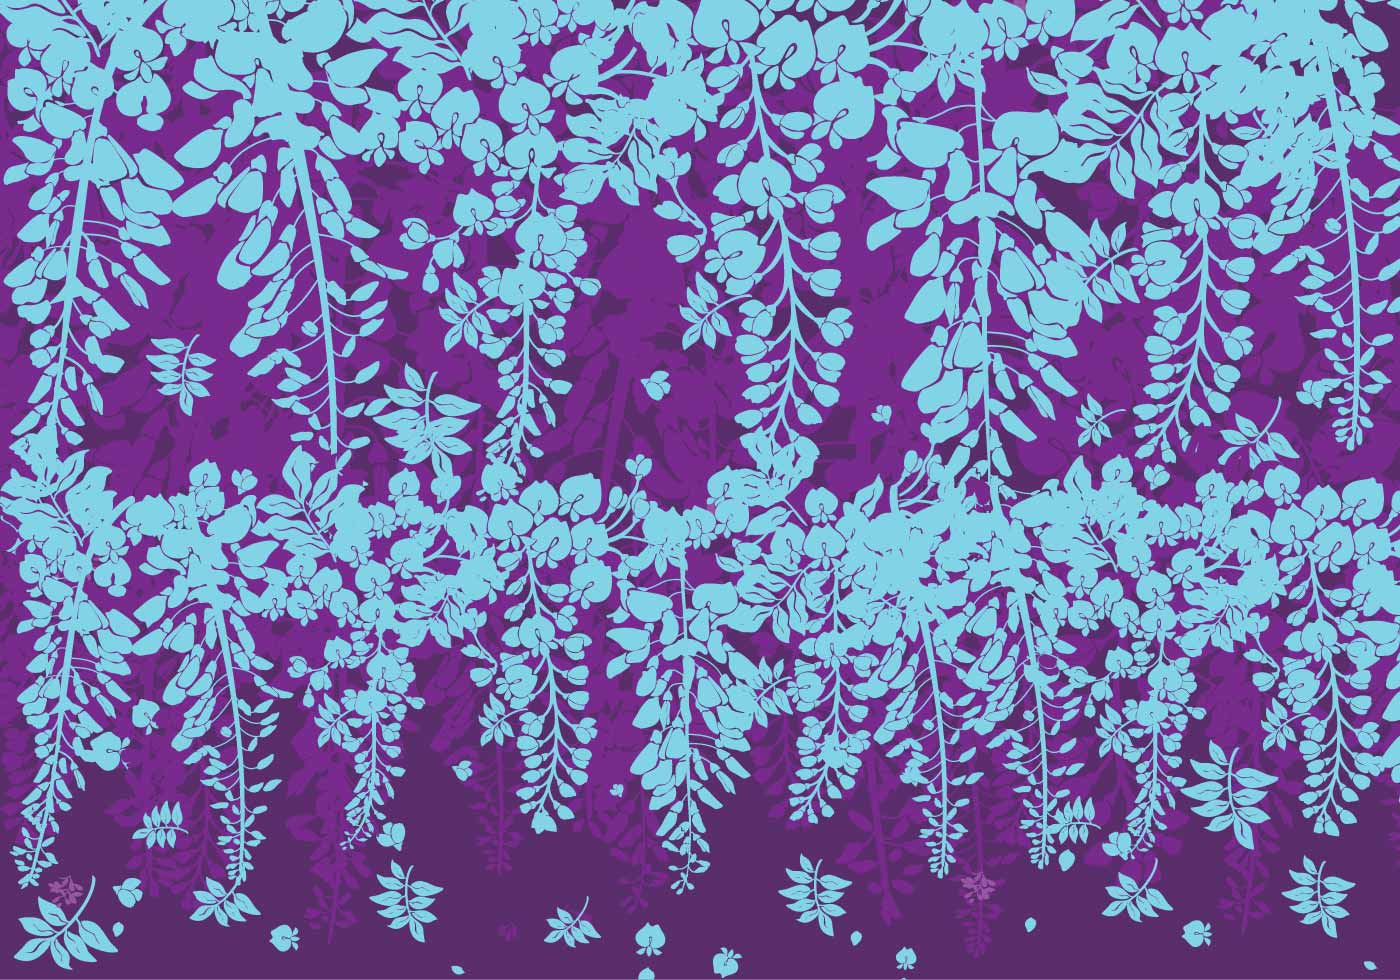 Blue And Purple Wisteria Flowers Vector Download Free Vector Art